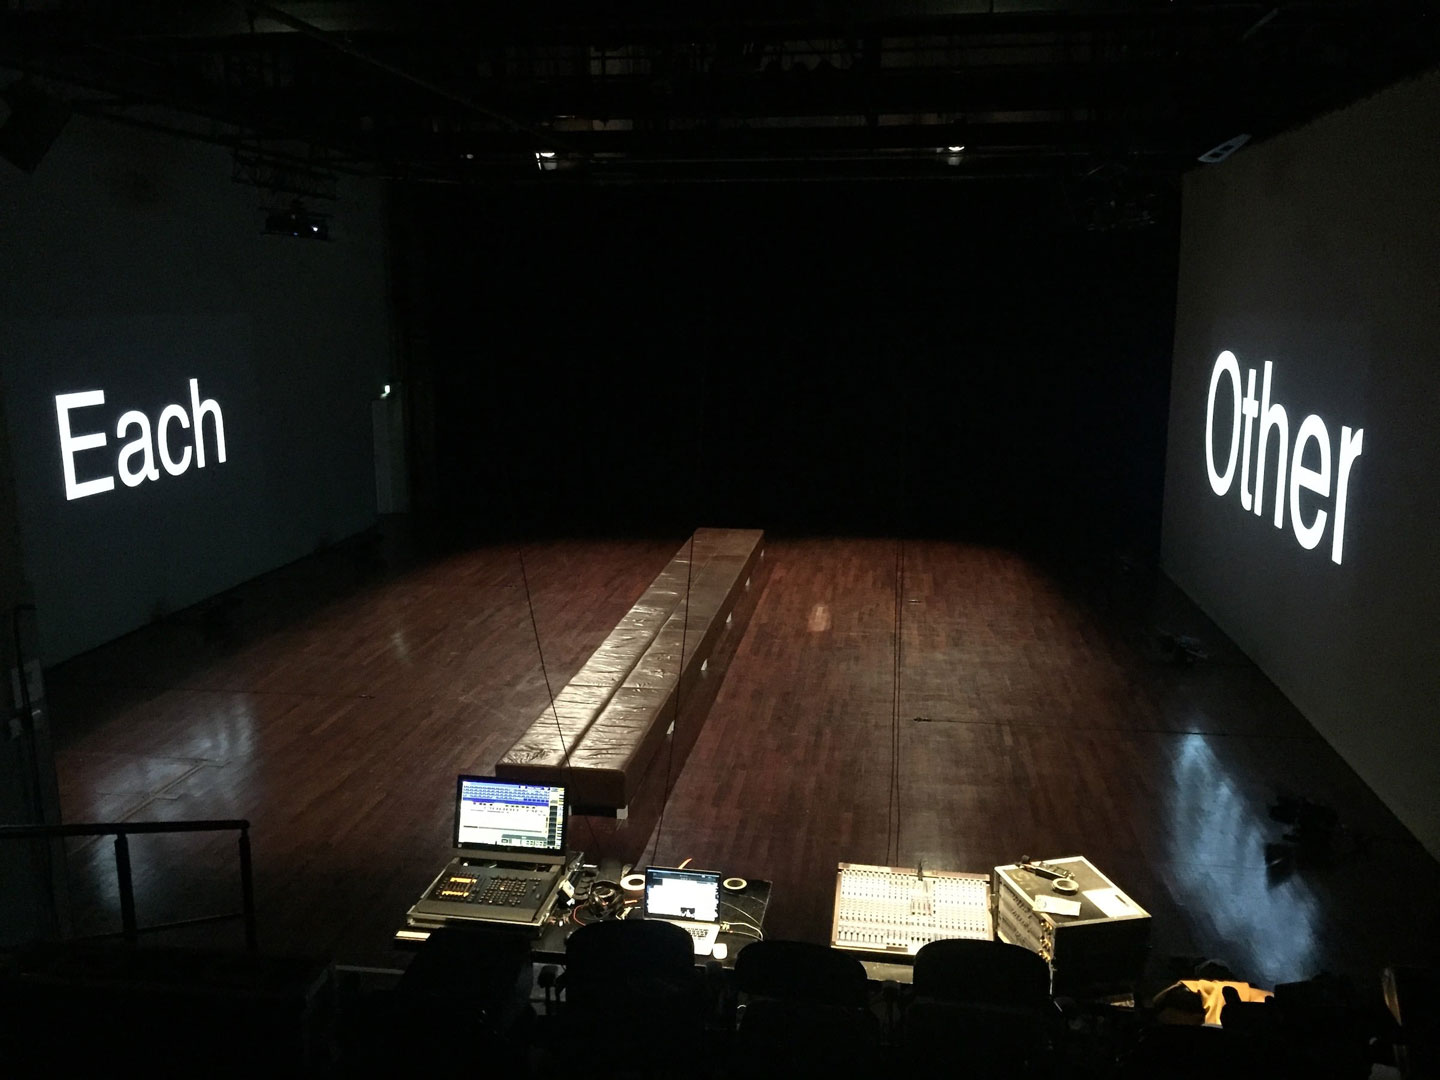 The set for Turning Backs (devised by Lígia Soares, Rita Vilhena and Diogo Alvim) waiting for the performers – that is, us – to enter